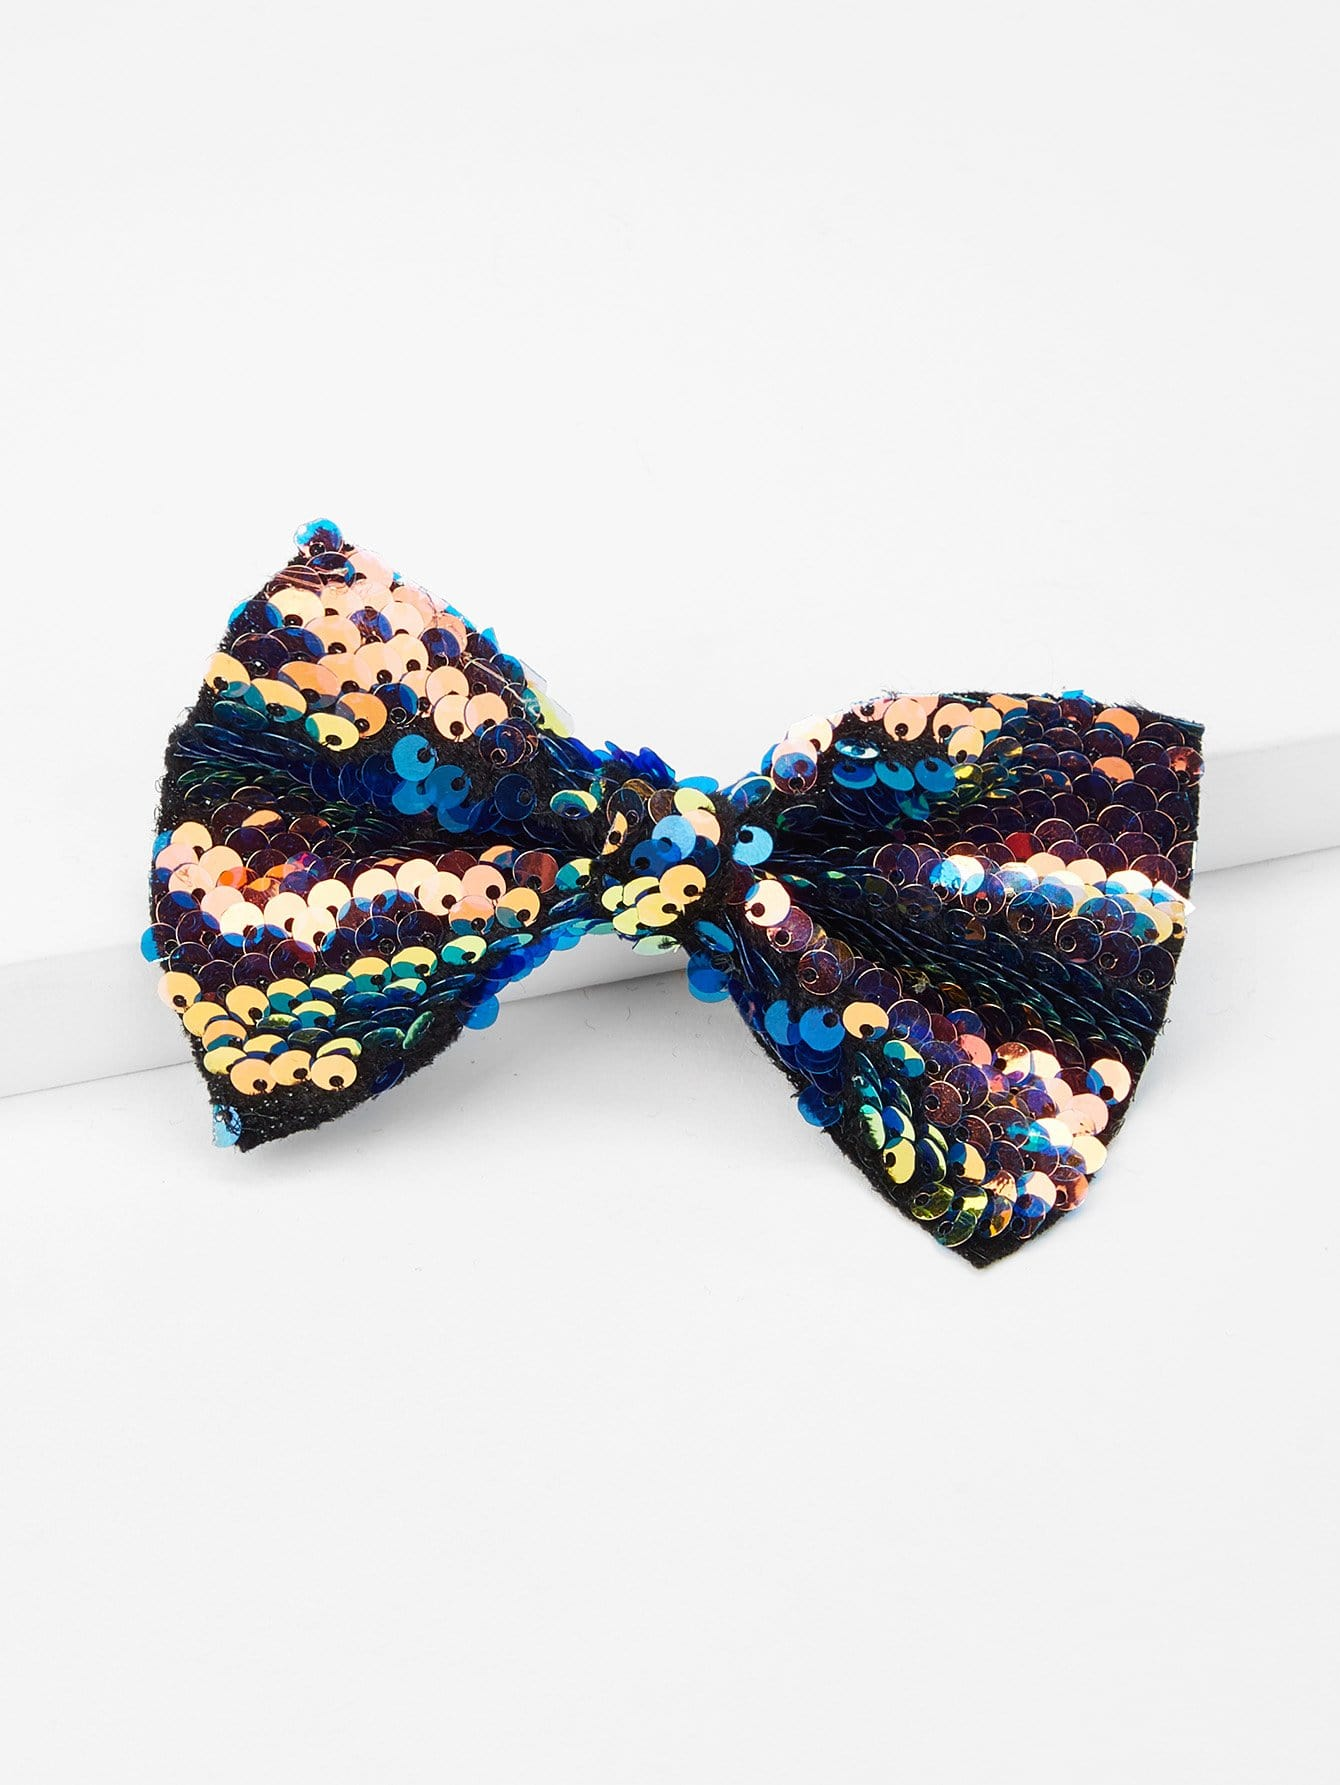 Sequin Bow Design Kids Hair Clip 40pcs lot 3 inch high quality grosgrain ribbon hair bow tie with without clip kids hairpin headwear bowknot accessories hdj15